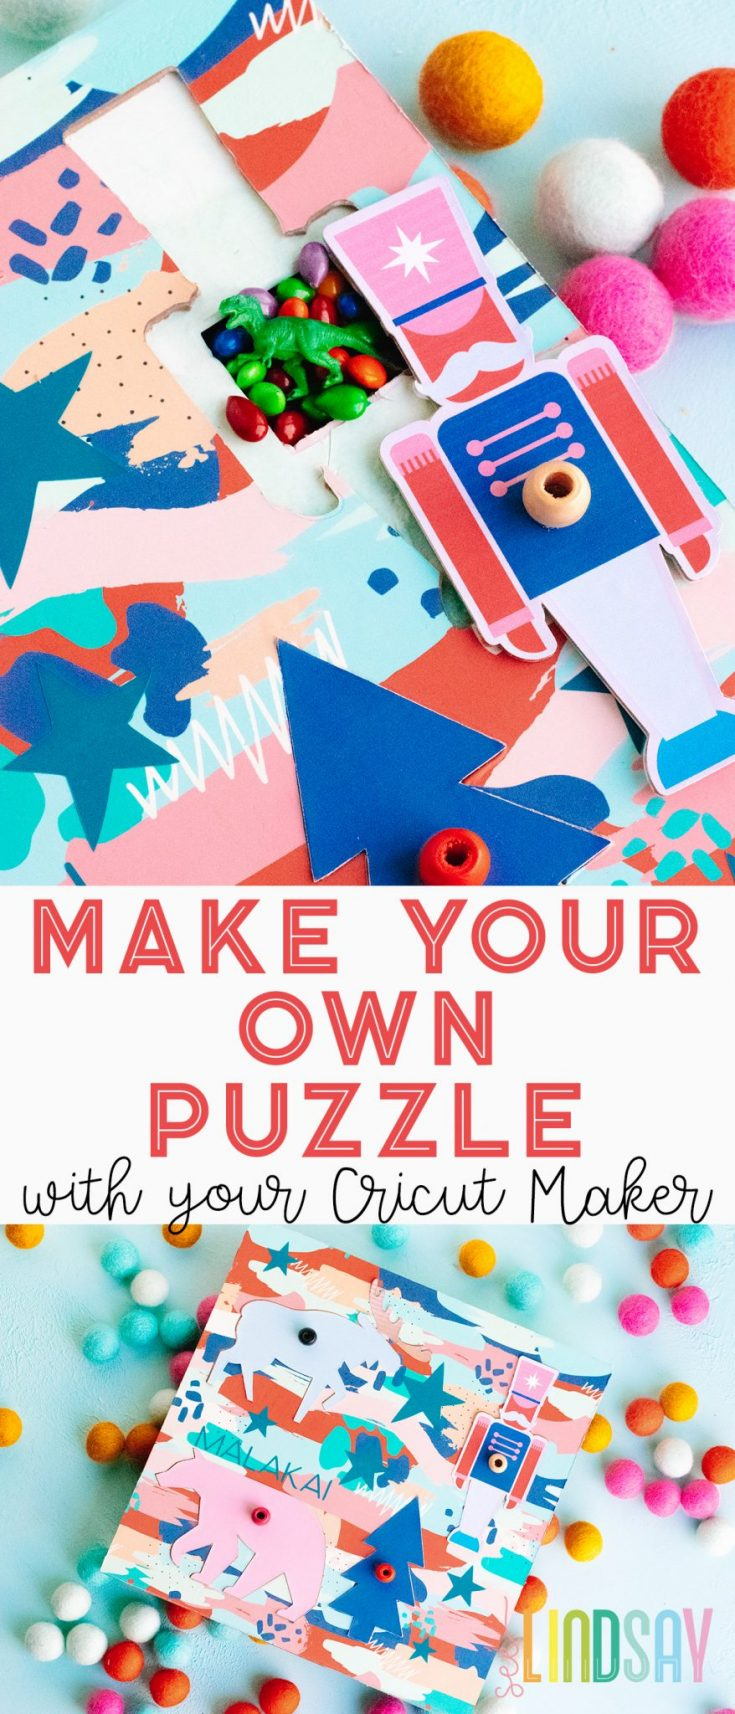 Make Your Own Puzzle with the Cricut Maker